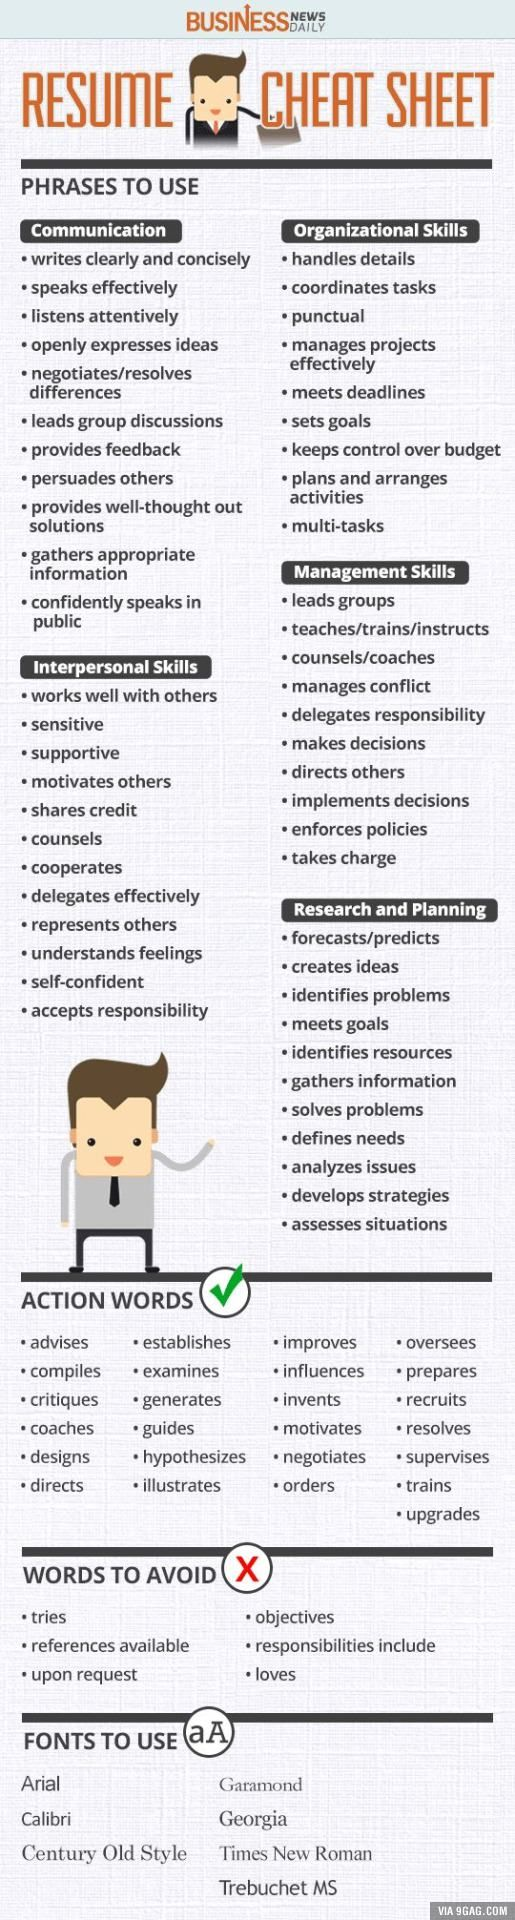 best ideas about job application cover letter what phrases should you use on your resume that actually mean something